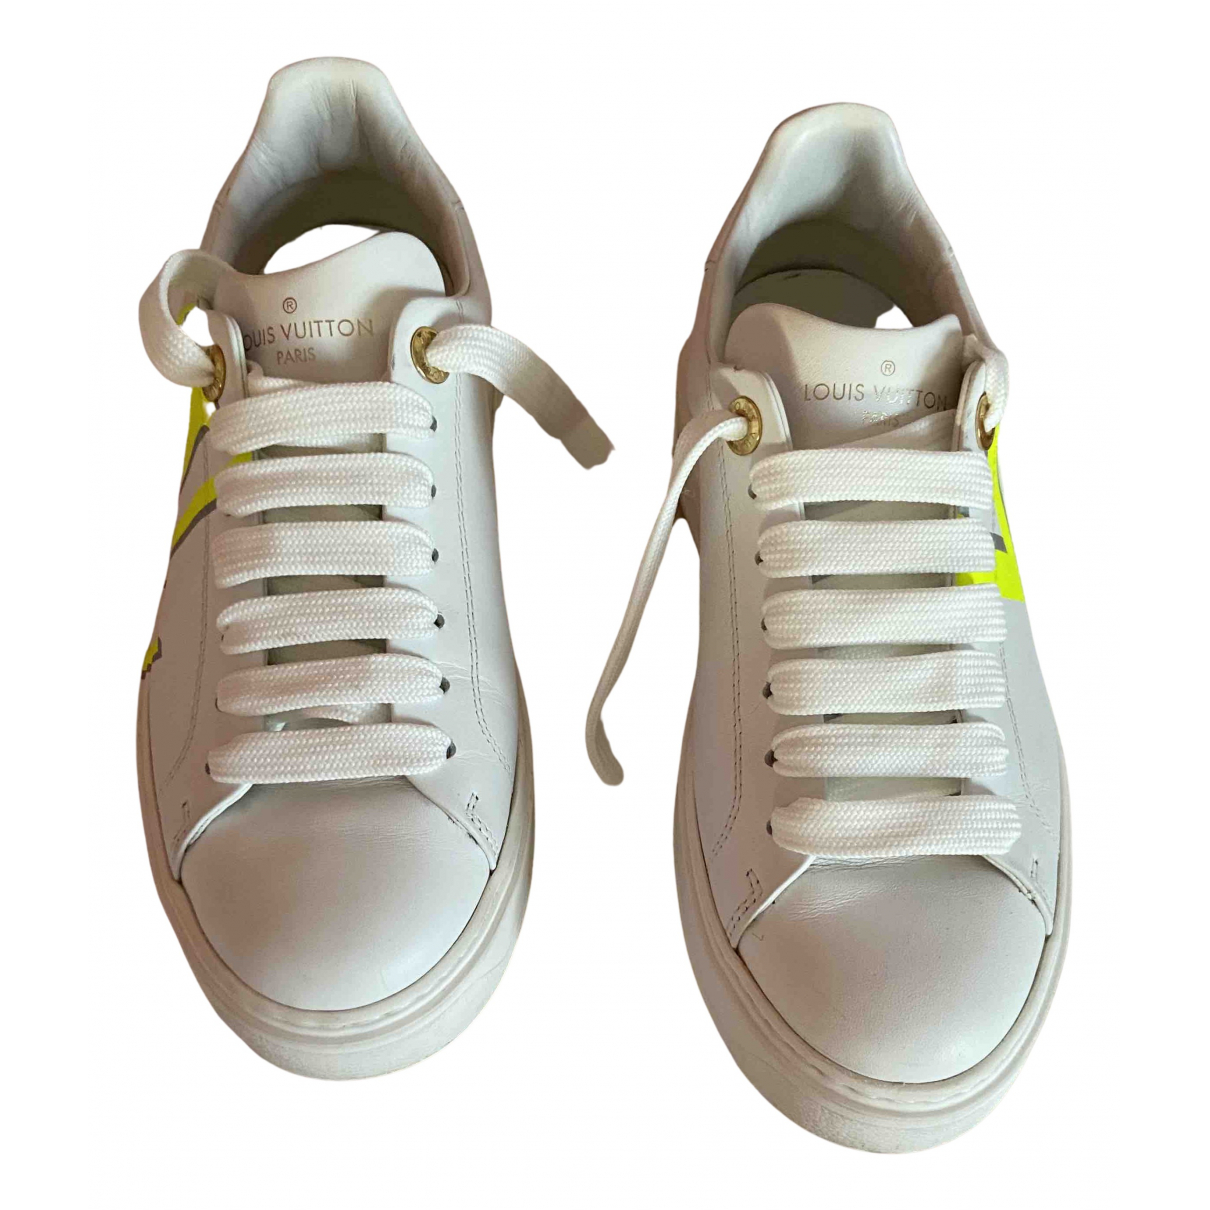 Louis Vuitton N White Leather Trainers for Women 36.5 EU